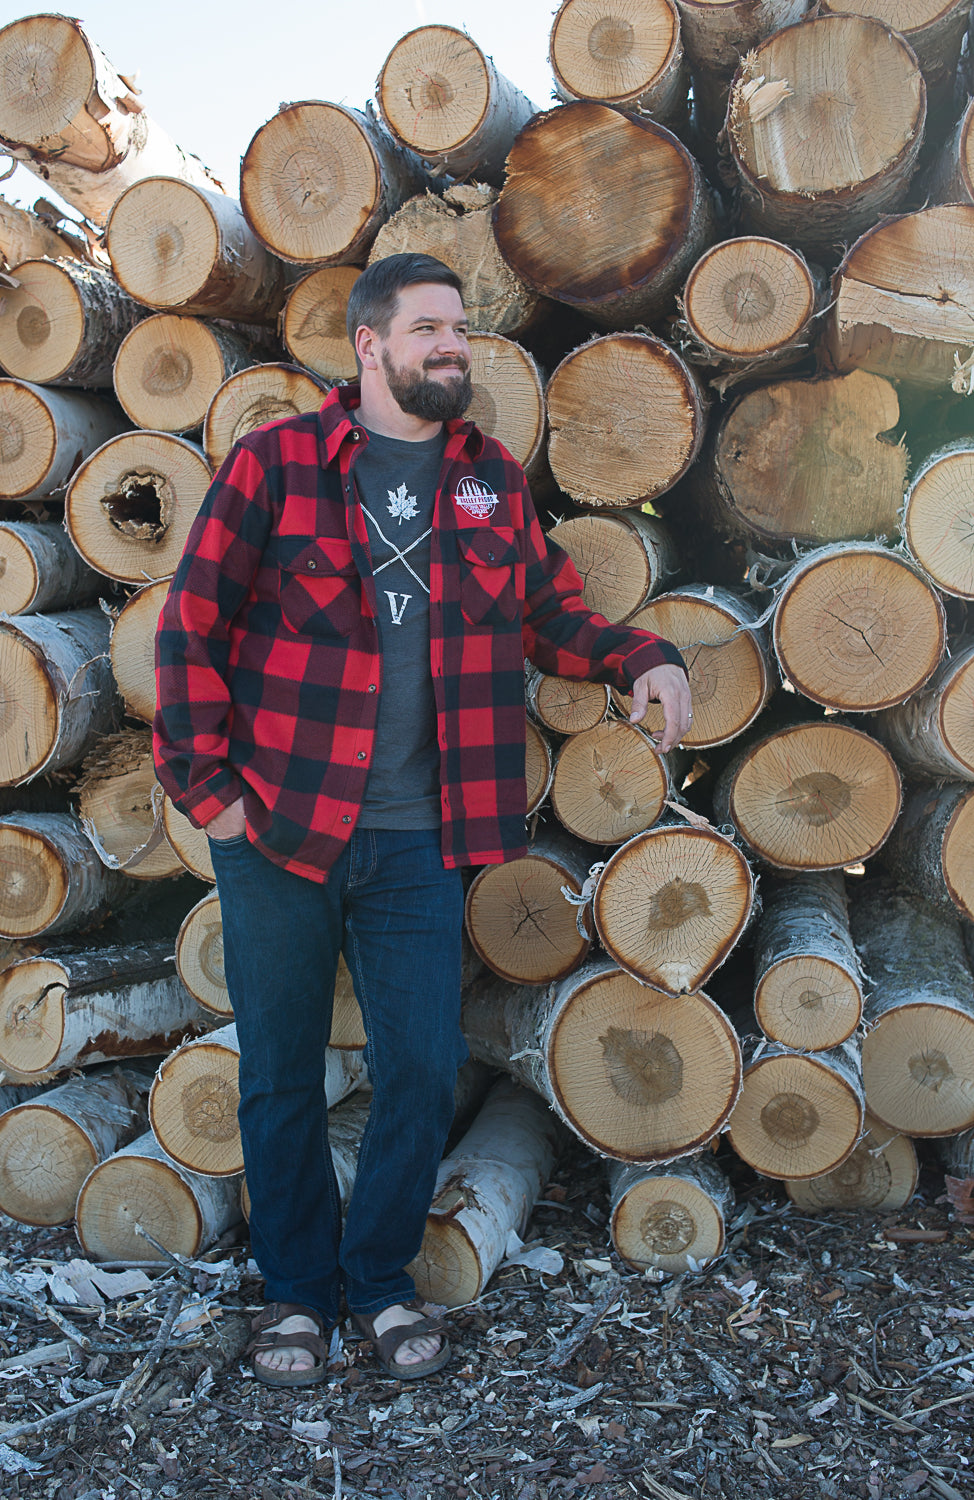 Valley Proud Men's Flannel Shirt - Black & Red